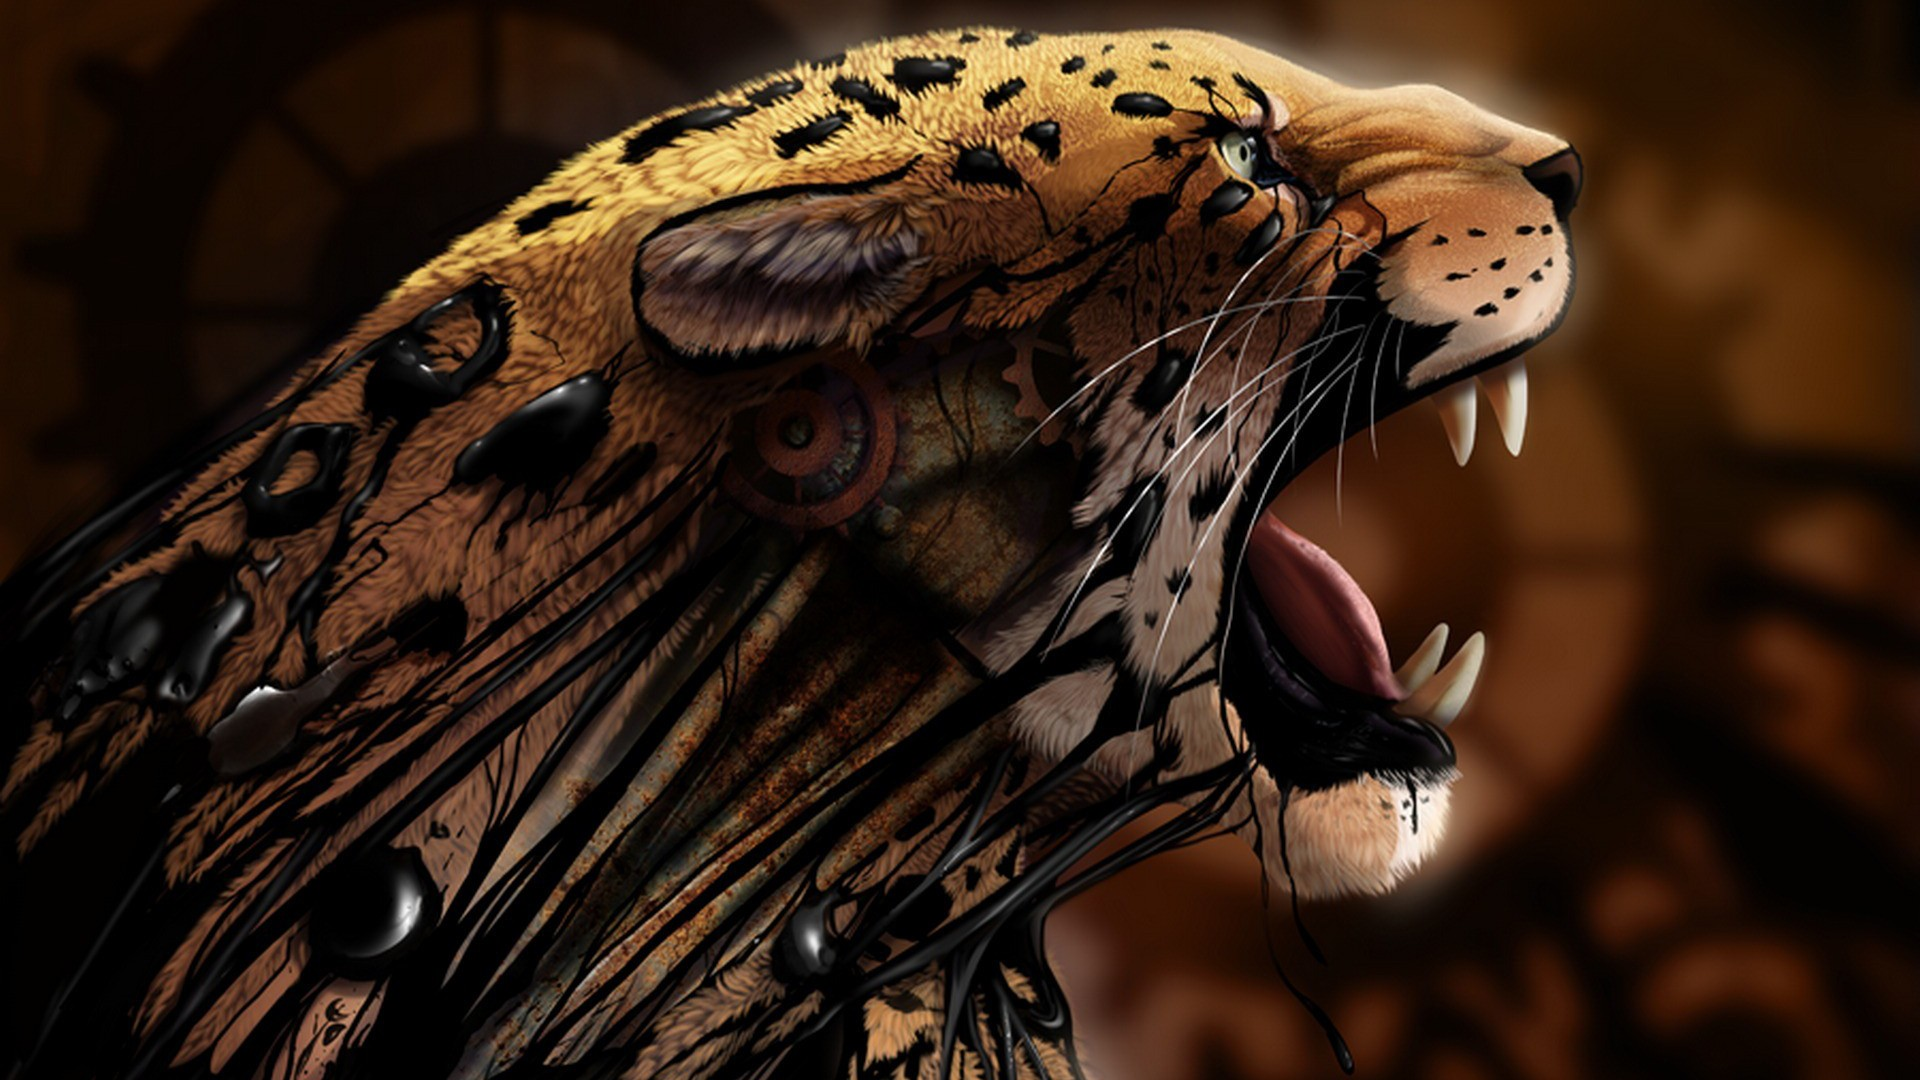 Tiger digital art wallpaper high definition high quality widescreen tiger digital art altavistaventures